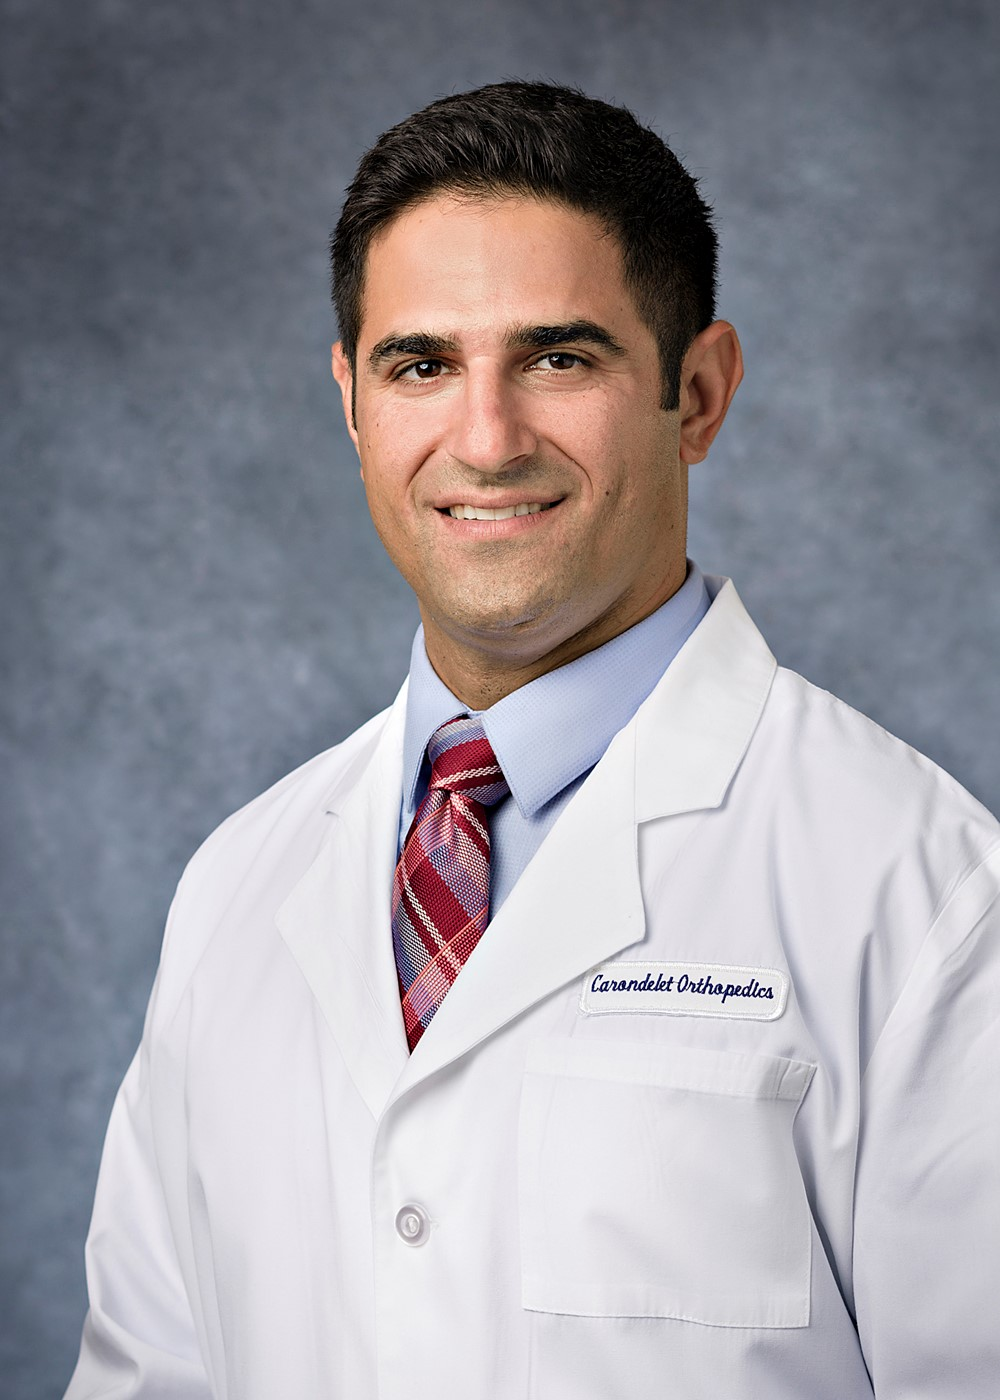 Michael J Khadavi, MD